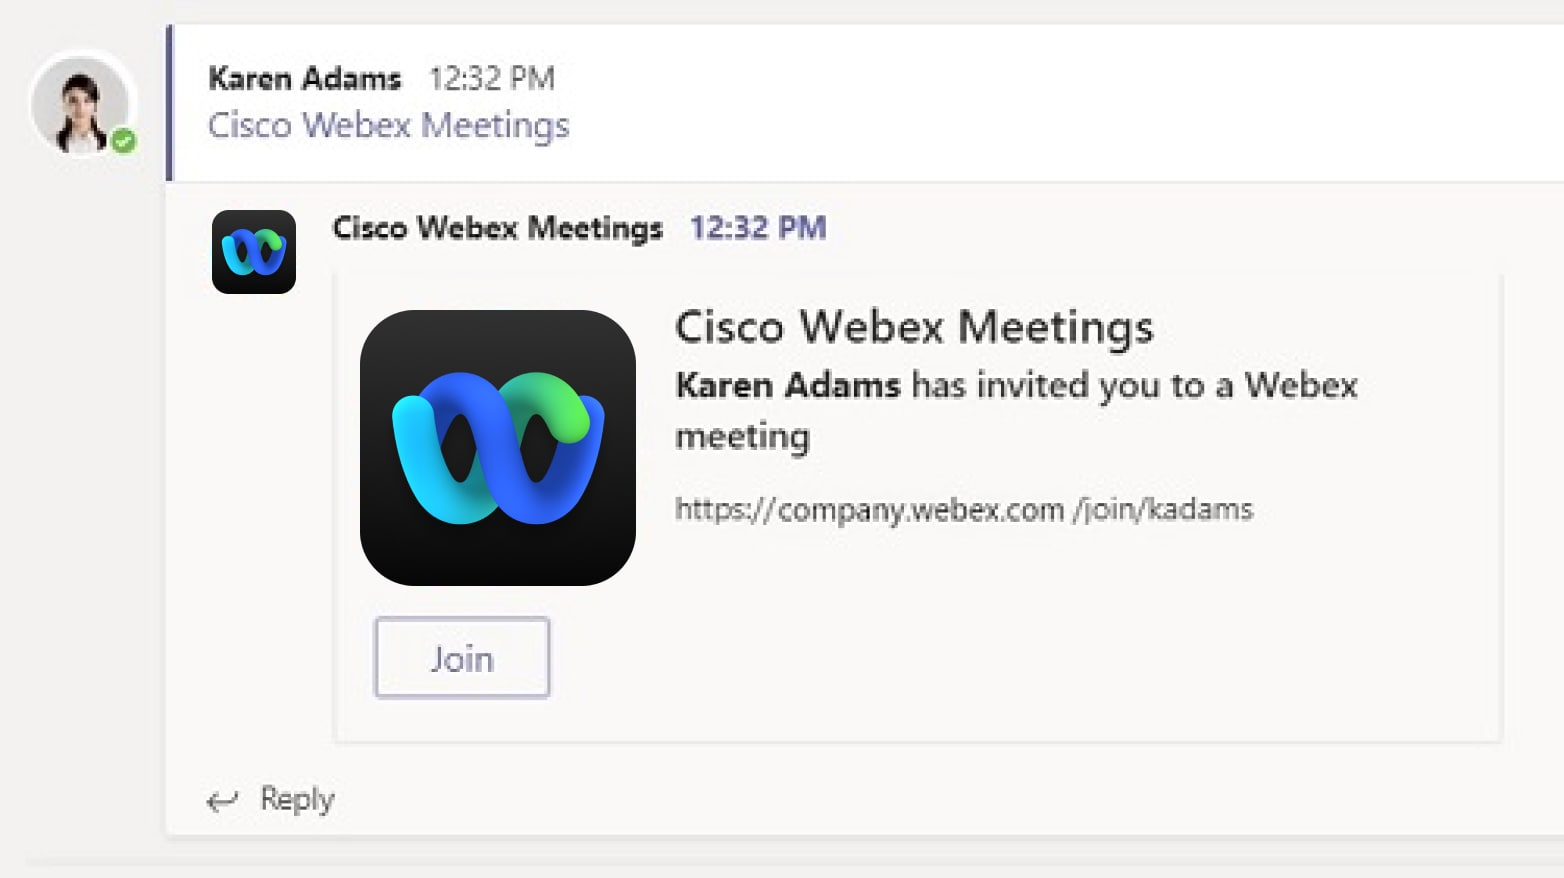 Delta i Cisco Webex-mötet